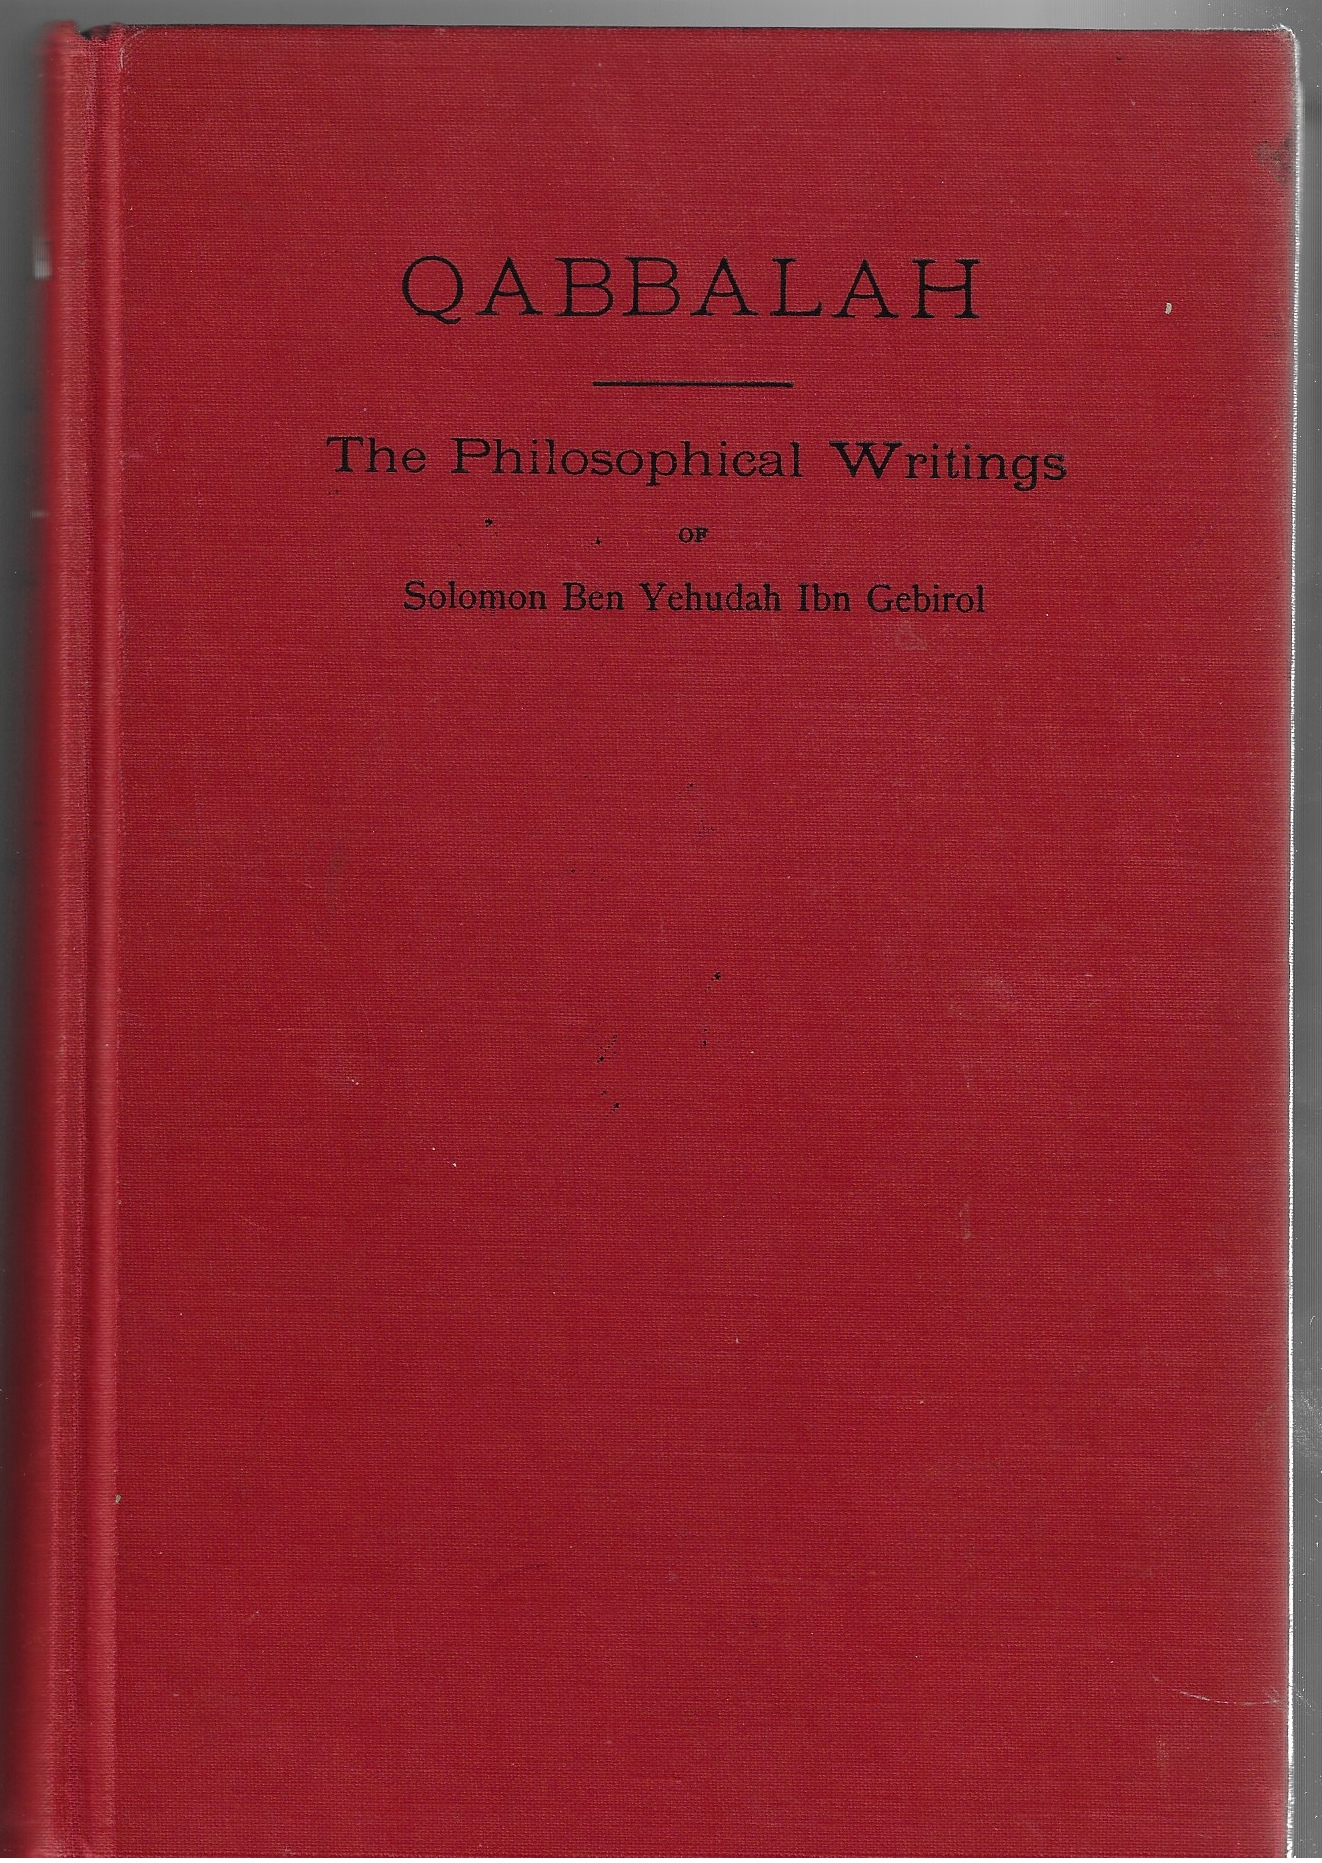 Image for Qabbalah -- The Philosophical Writings of Solomon Ben Yehudah Ibn Gebirol or Avicebron, and Their Connection with the Hebrew Qabbalah and Sepher ... Lodge of Initiates, Translated from the Zohar